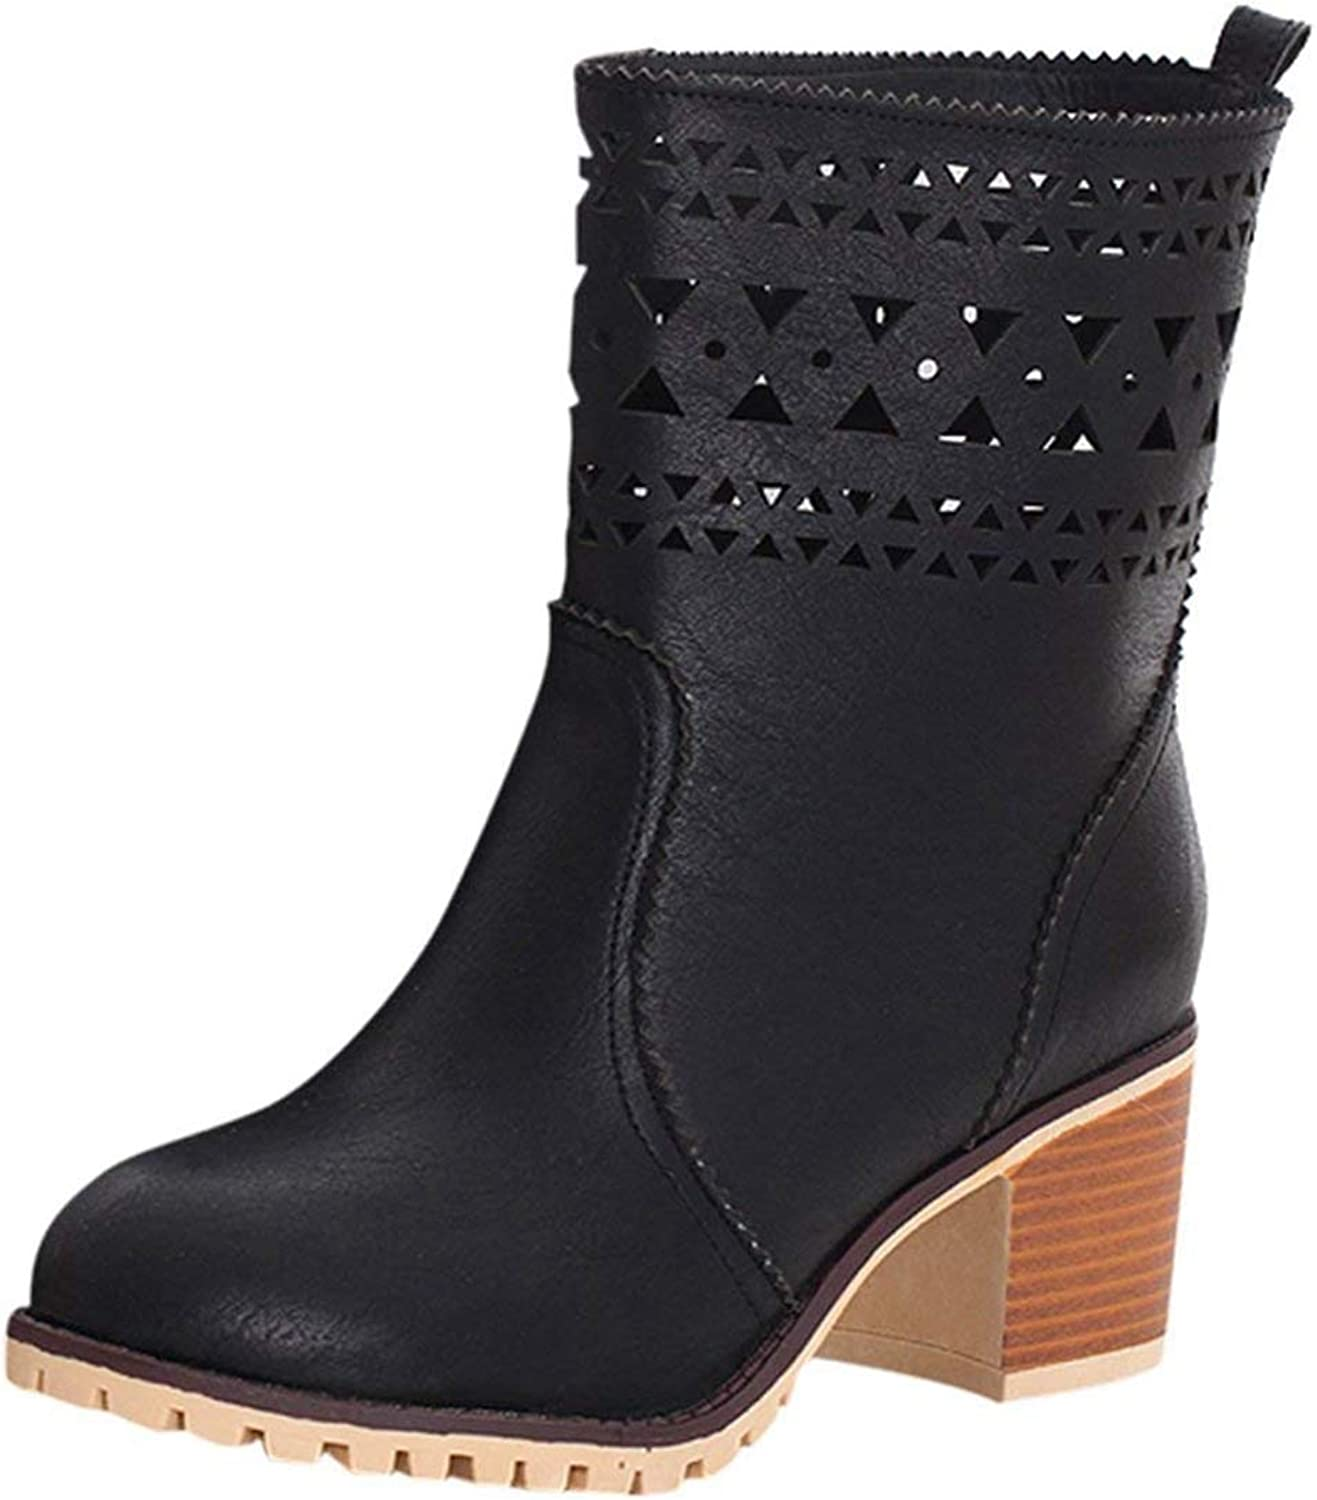 Vitalo Womens Mid Block Heel Wide Calf Ankle Boots Hollow Autumn Winter shoes